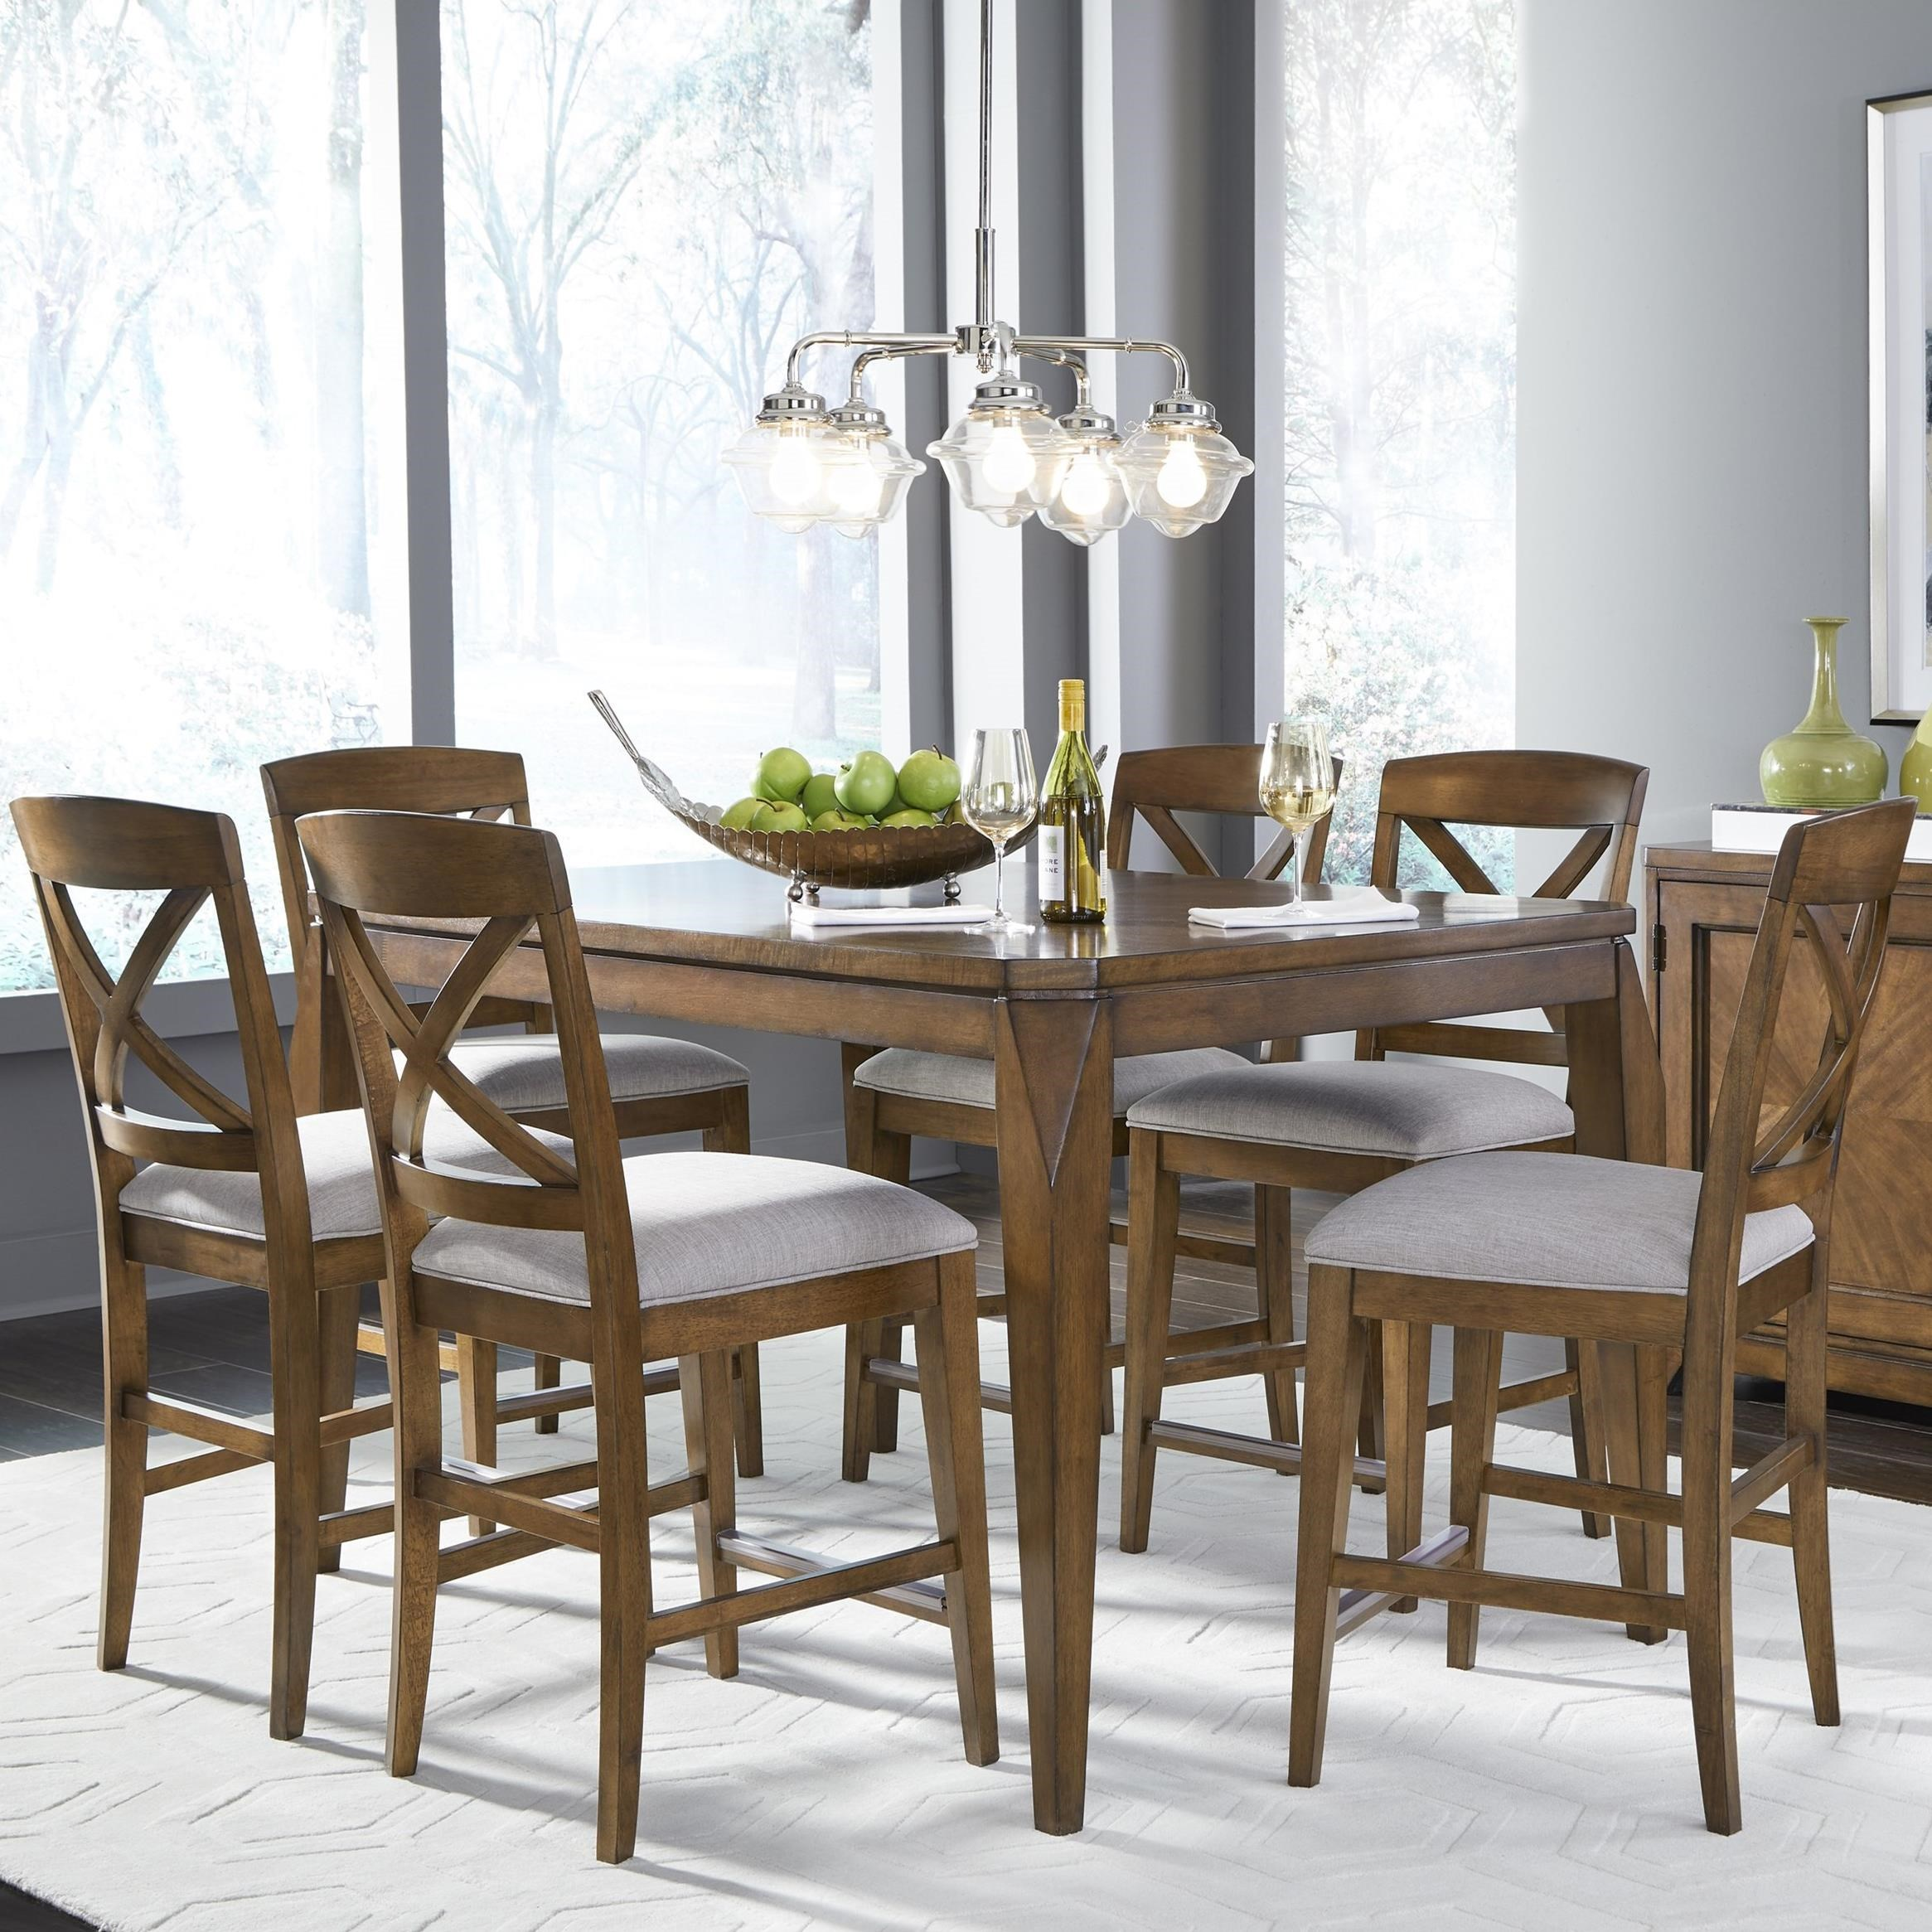 Highland 7-Piece Pub Table and Stool Set by Legacy Classic at Belfort Furniture